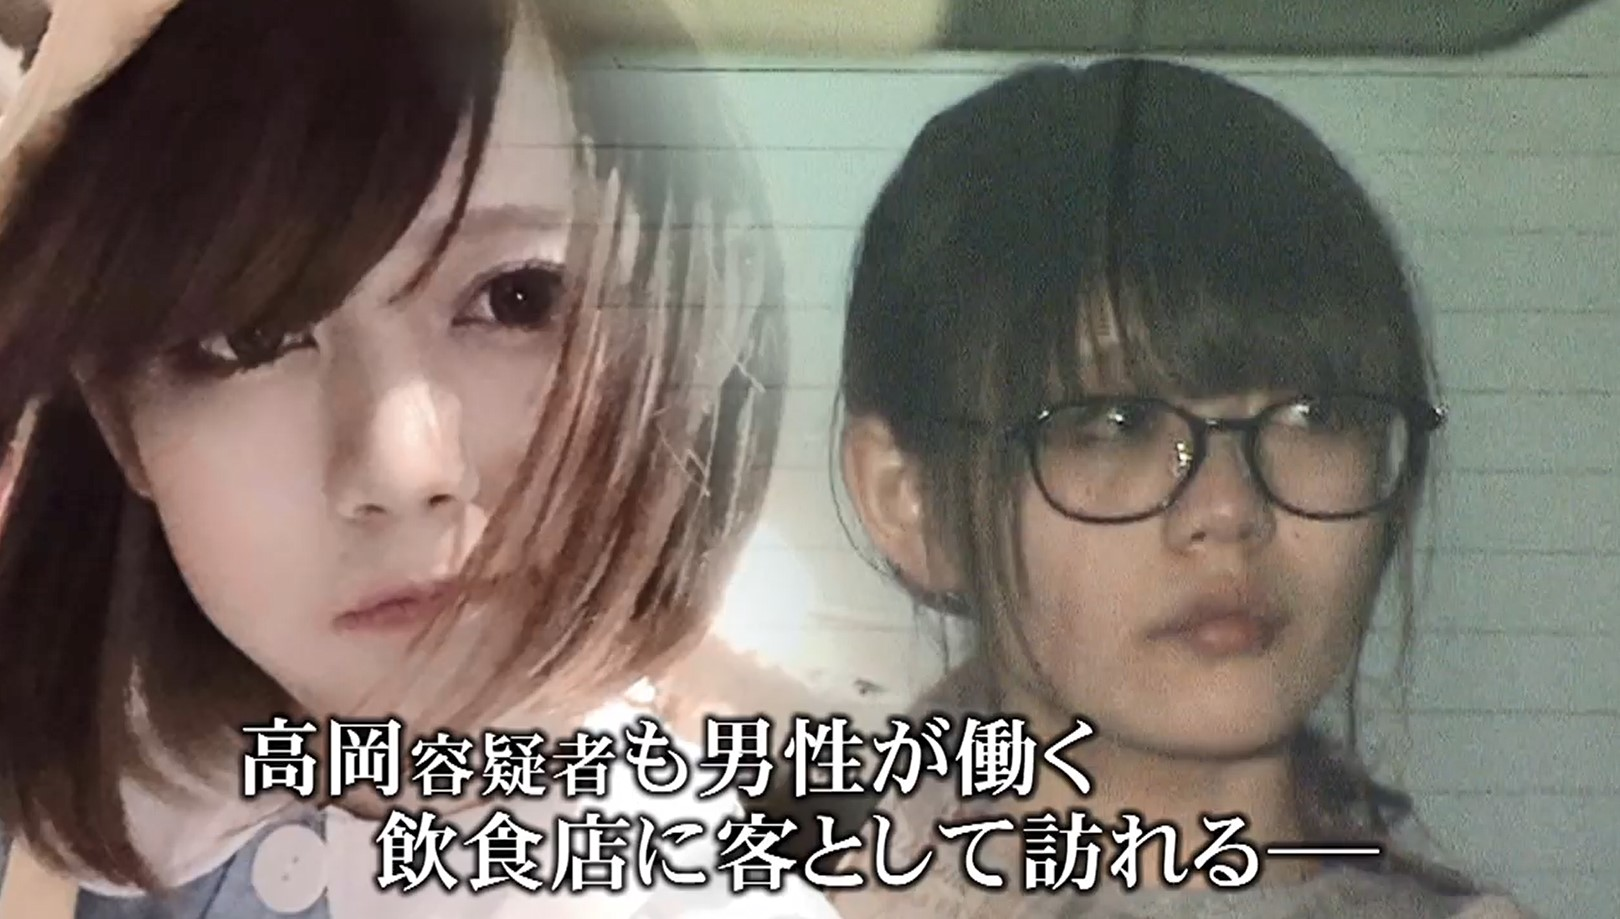 Yuka Takaoka incident: Real life yandere tale leaves man in critical